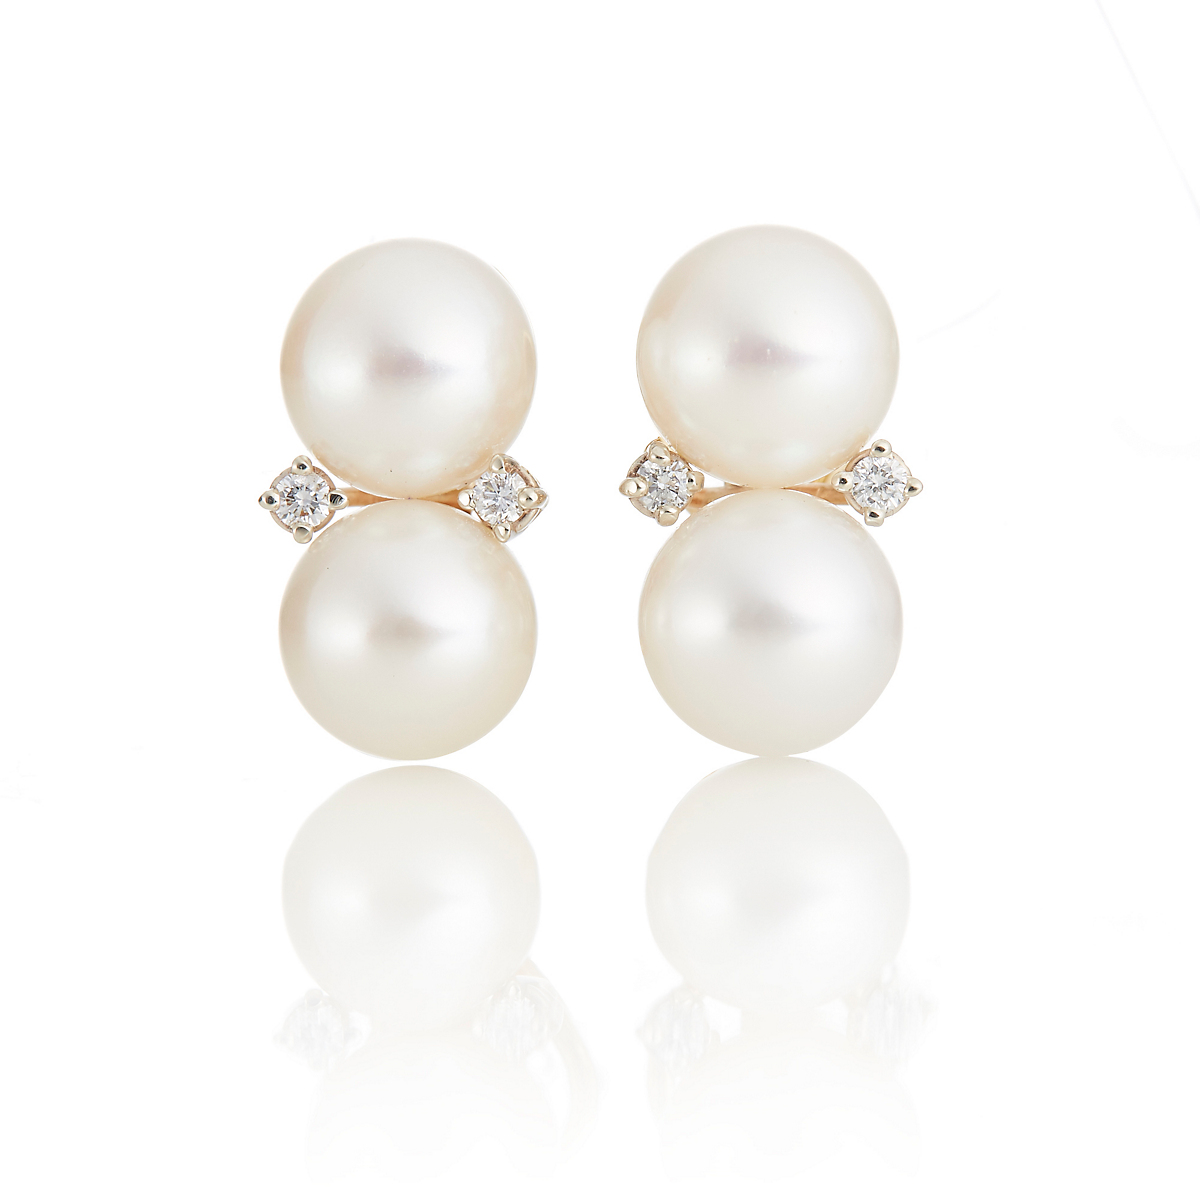 Gump's White Pearl & Diamond Stacked Earrings